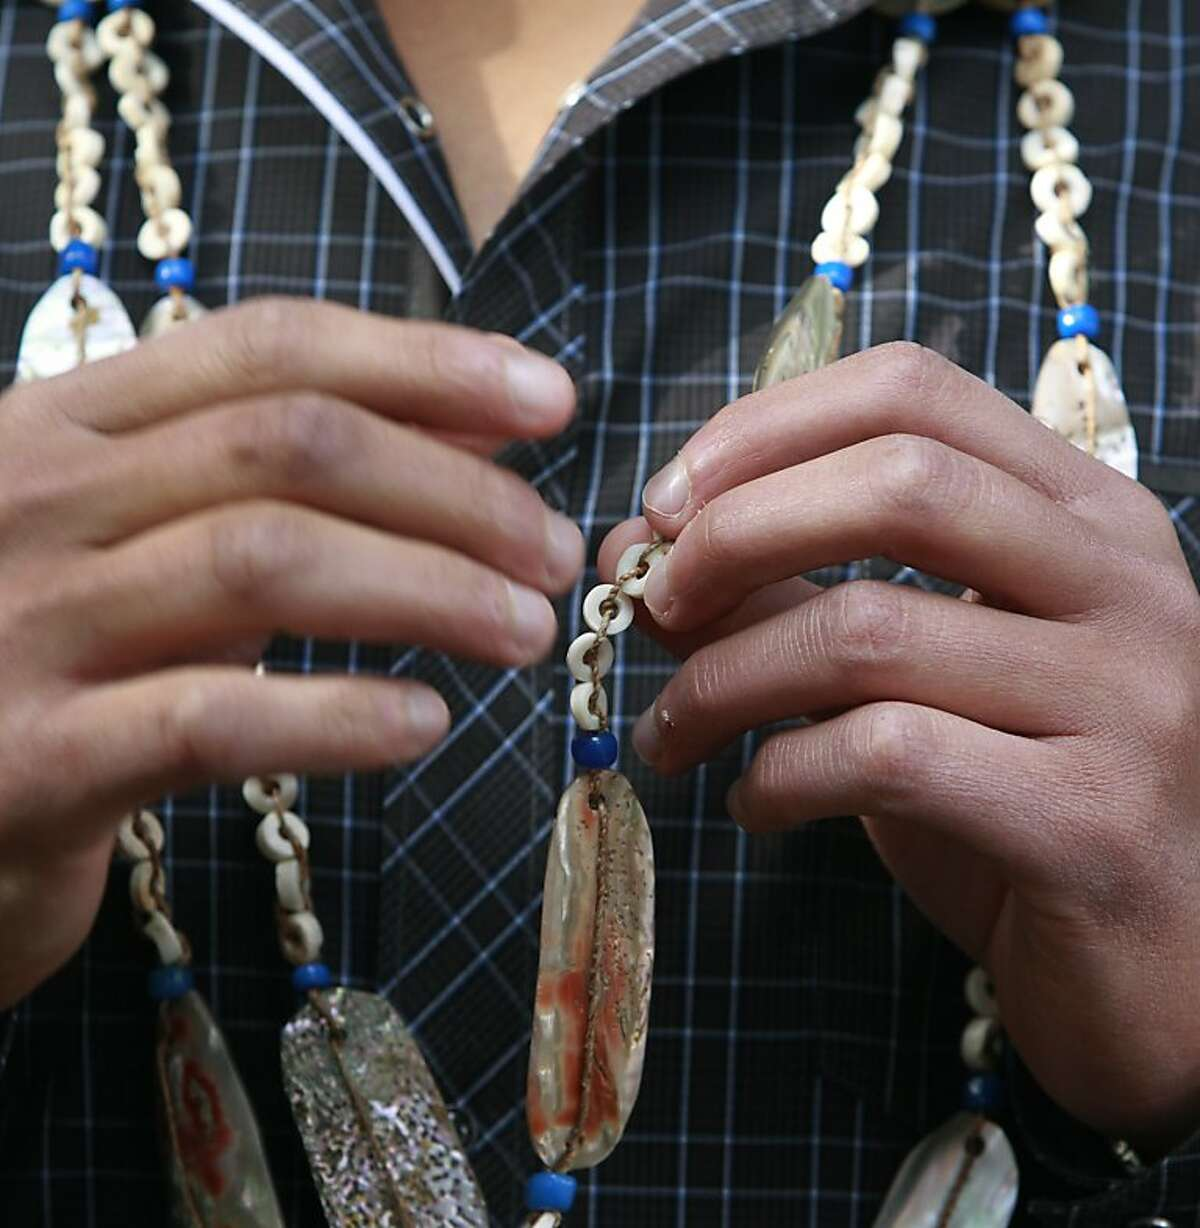 Vincent Medina wears a traditional necklace, handed down from Ohlone ancestors, while leading a tour of Mission Dolores for students from Oakland's Hillcrest Elementary School in San Francisco, Calif. on Thursday, Nov. 15, 2012. Medina is hoping to revive the Cochoenyo language that was spoken by his Ohlone ancestors.